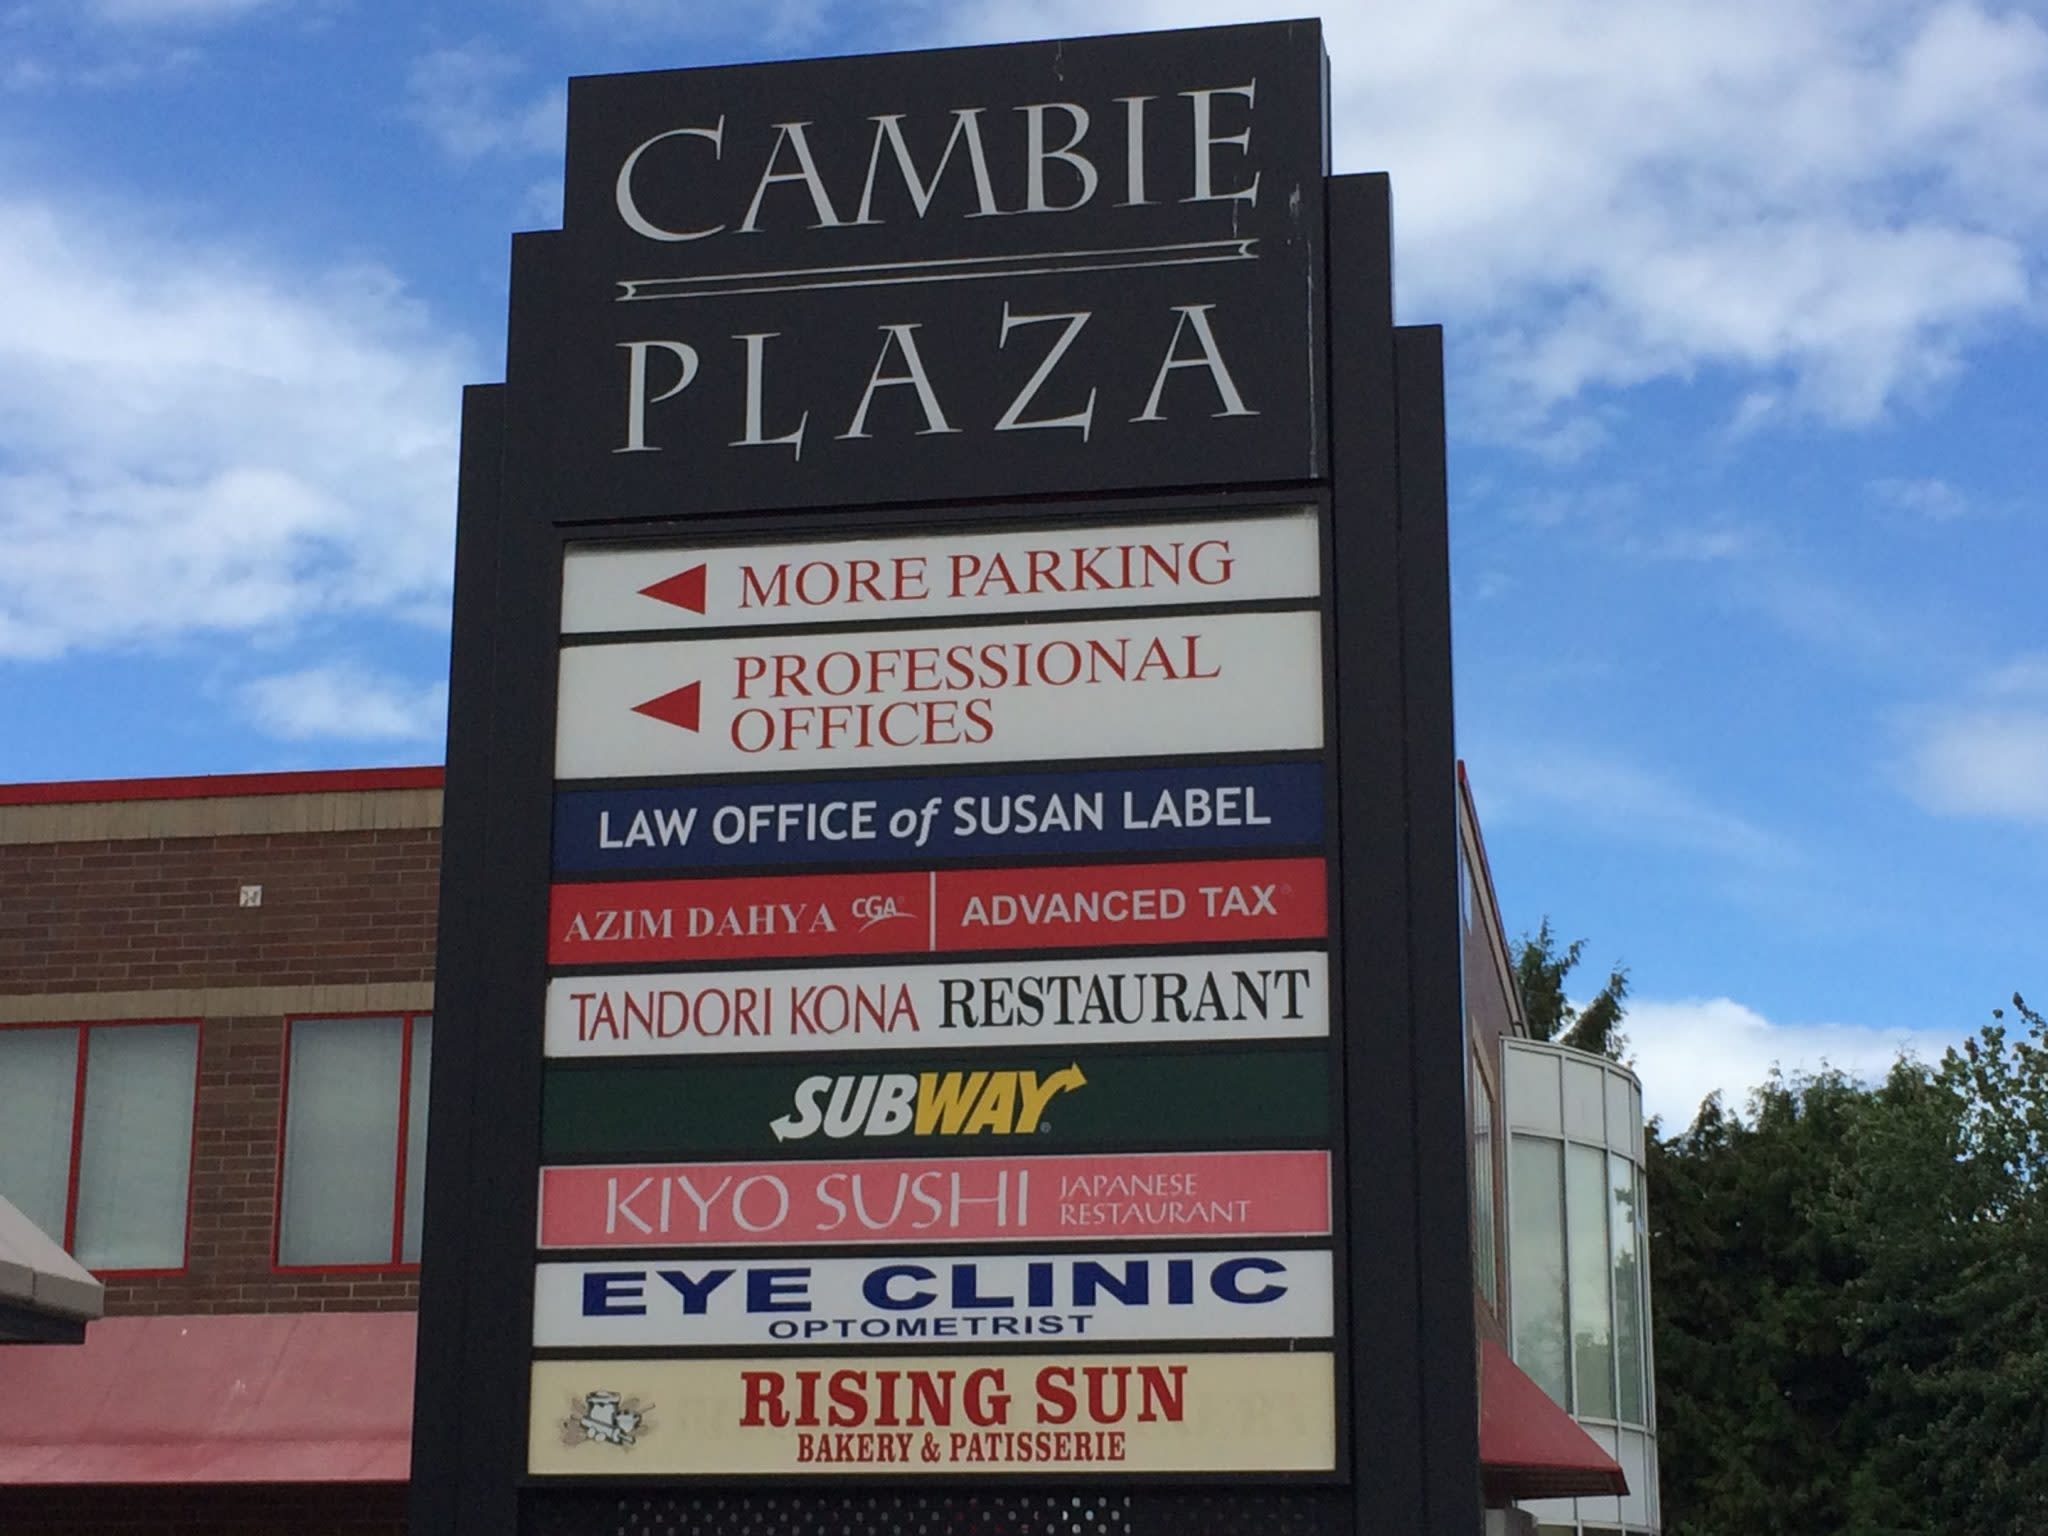 Cambie Plaza